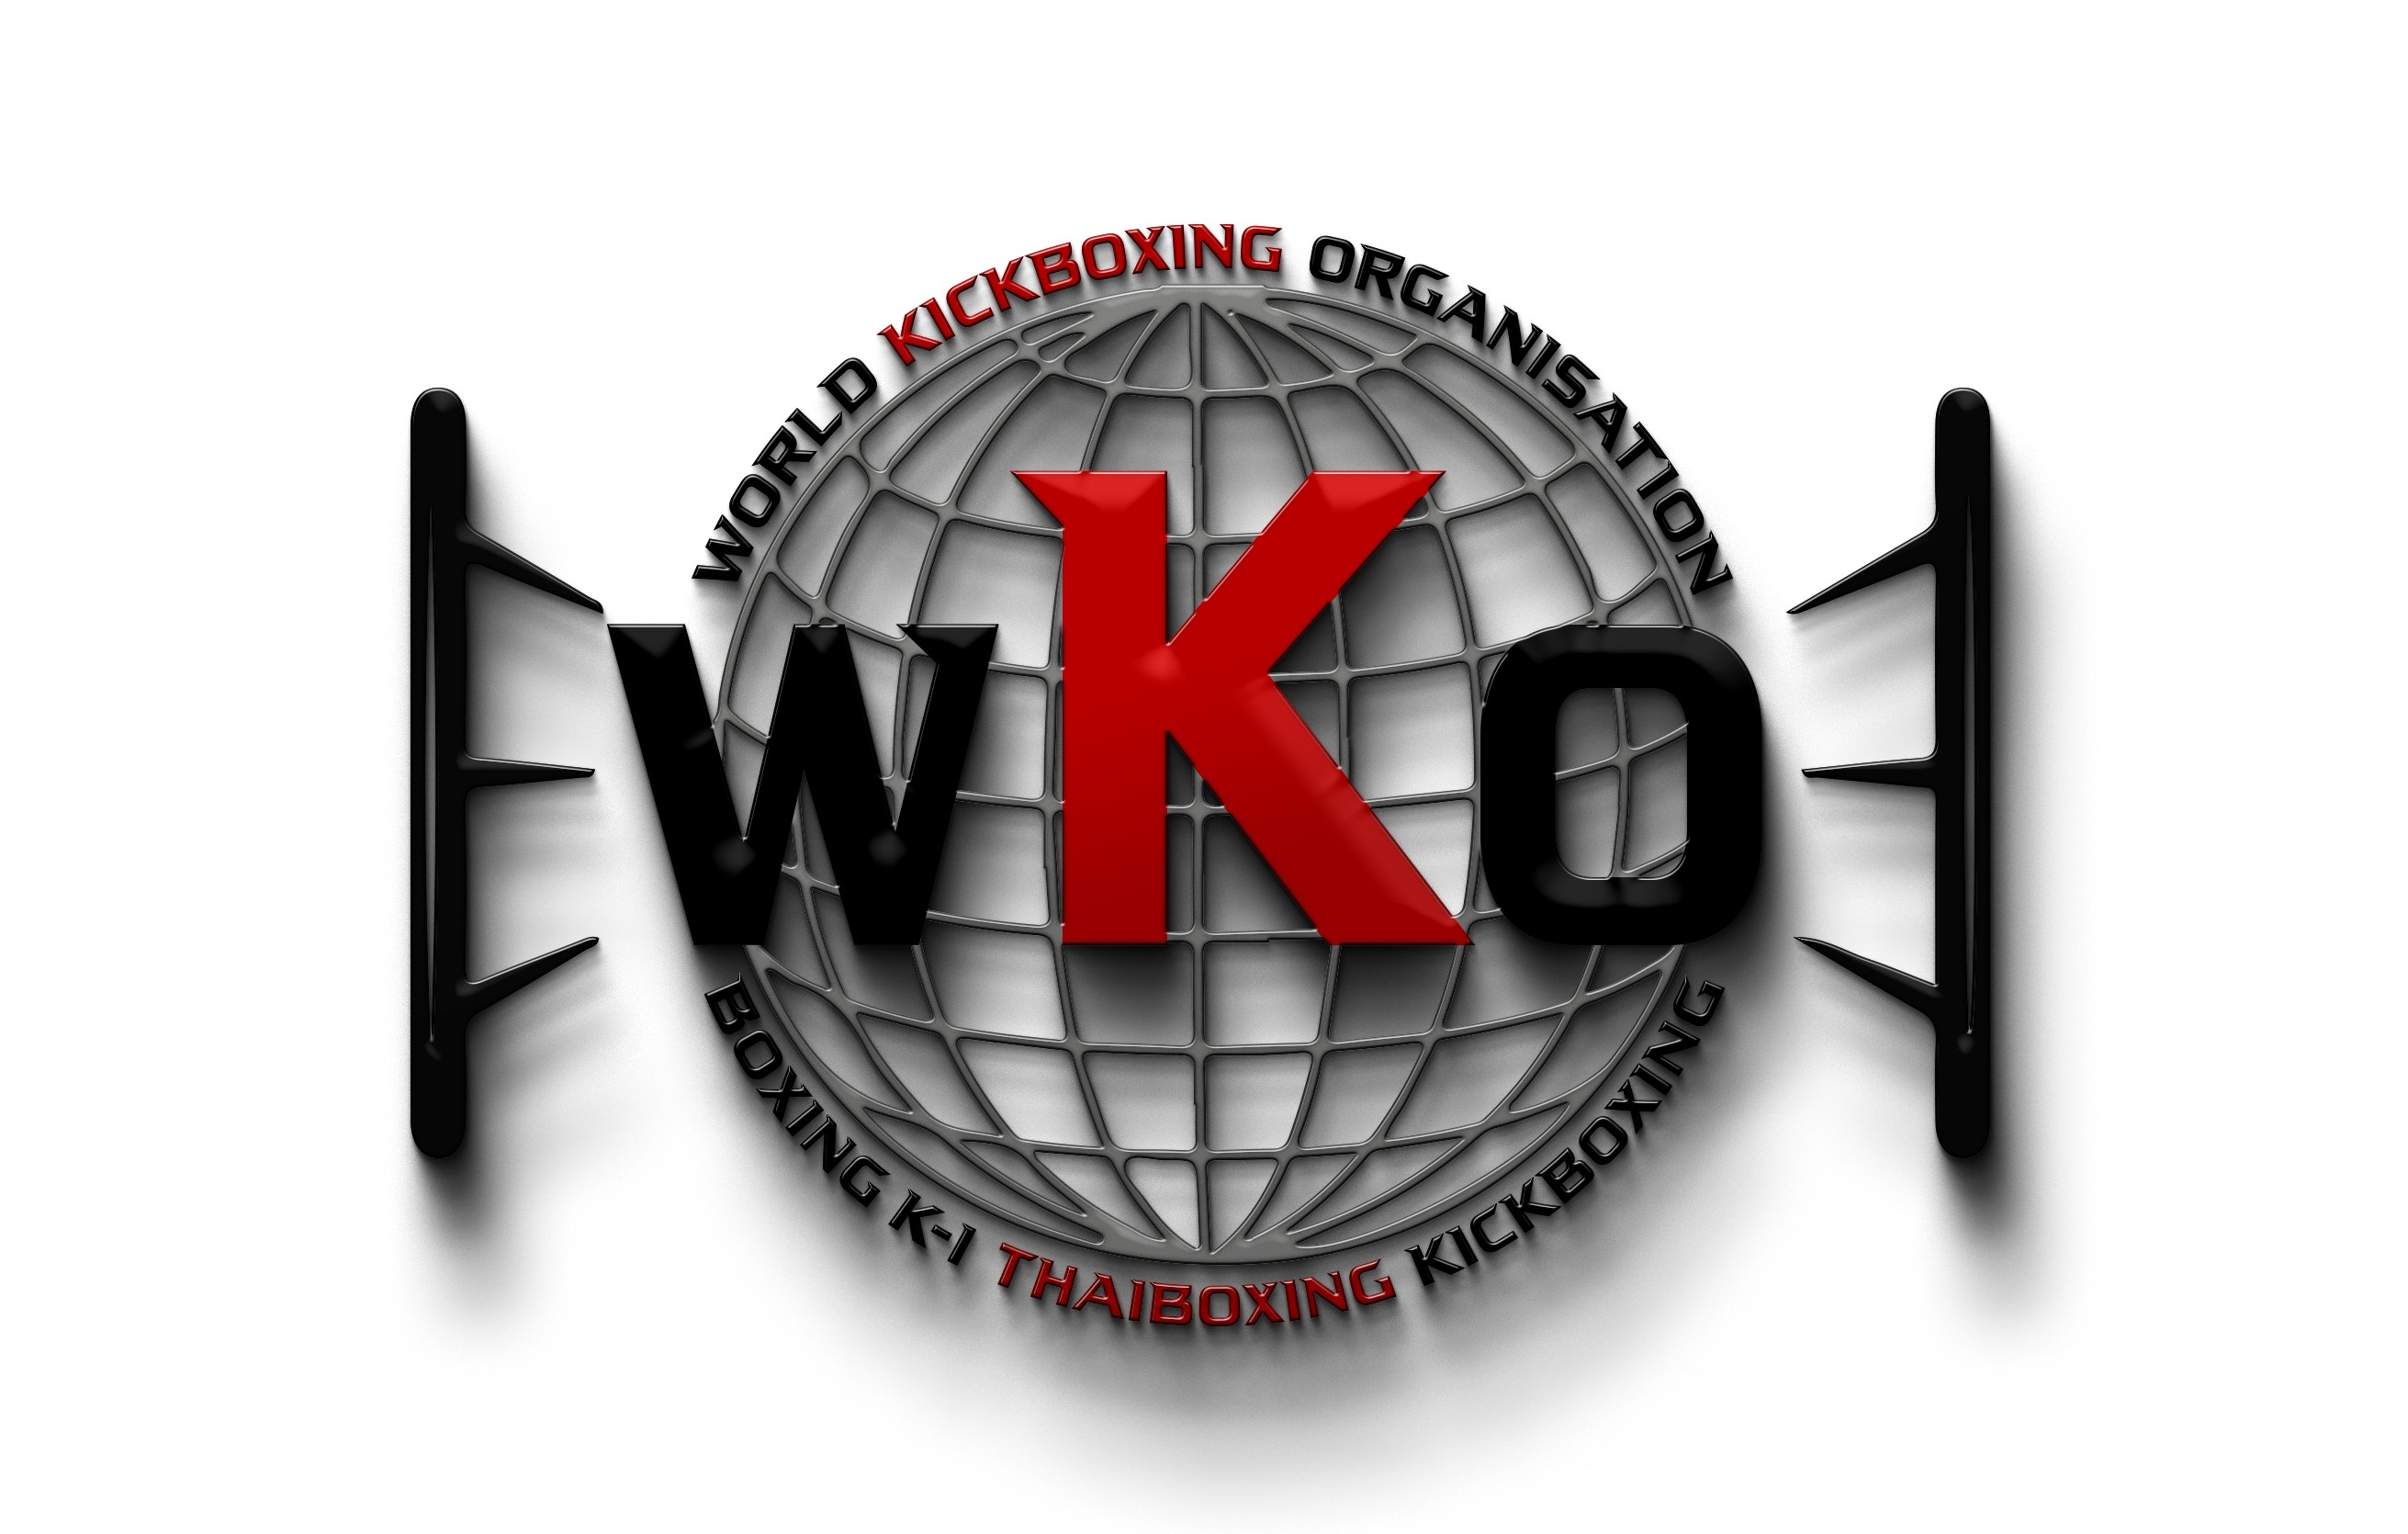 WKO Events